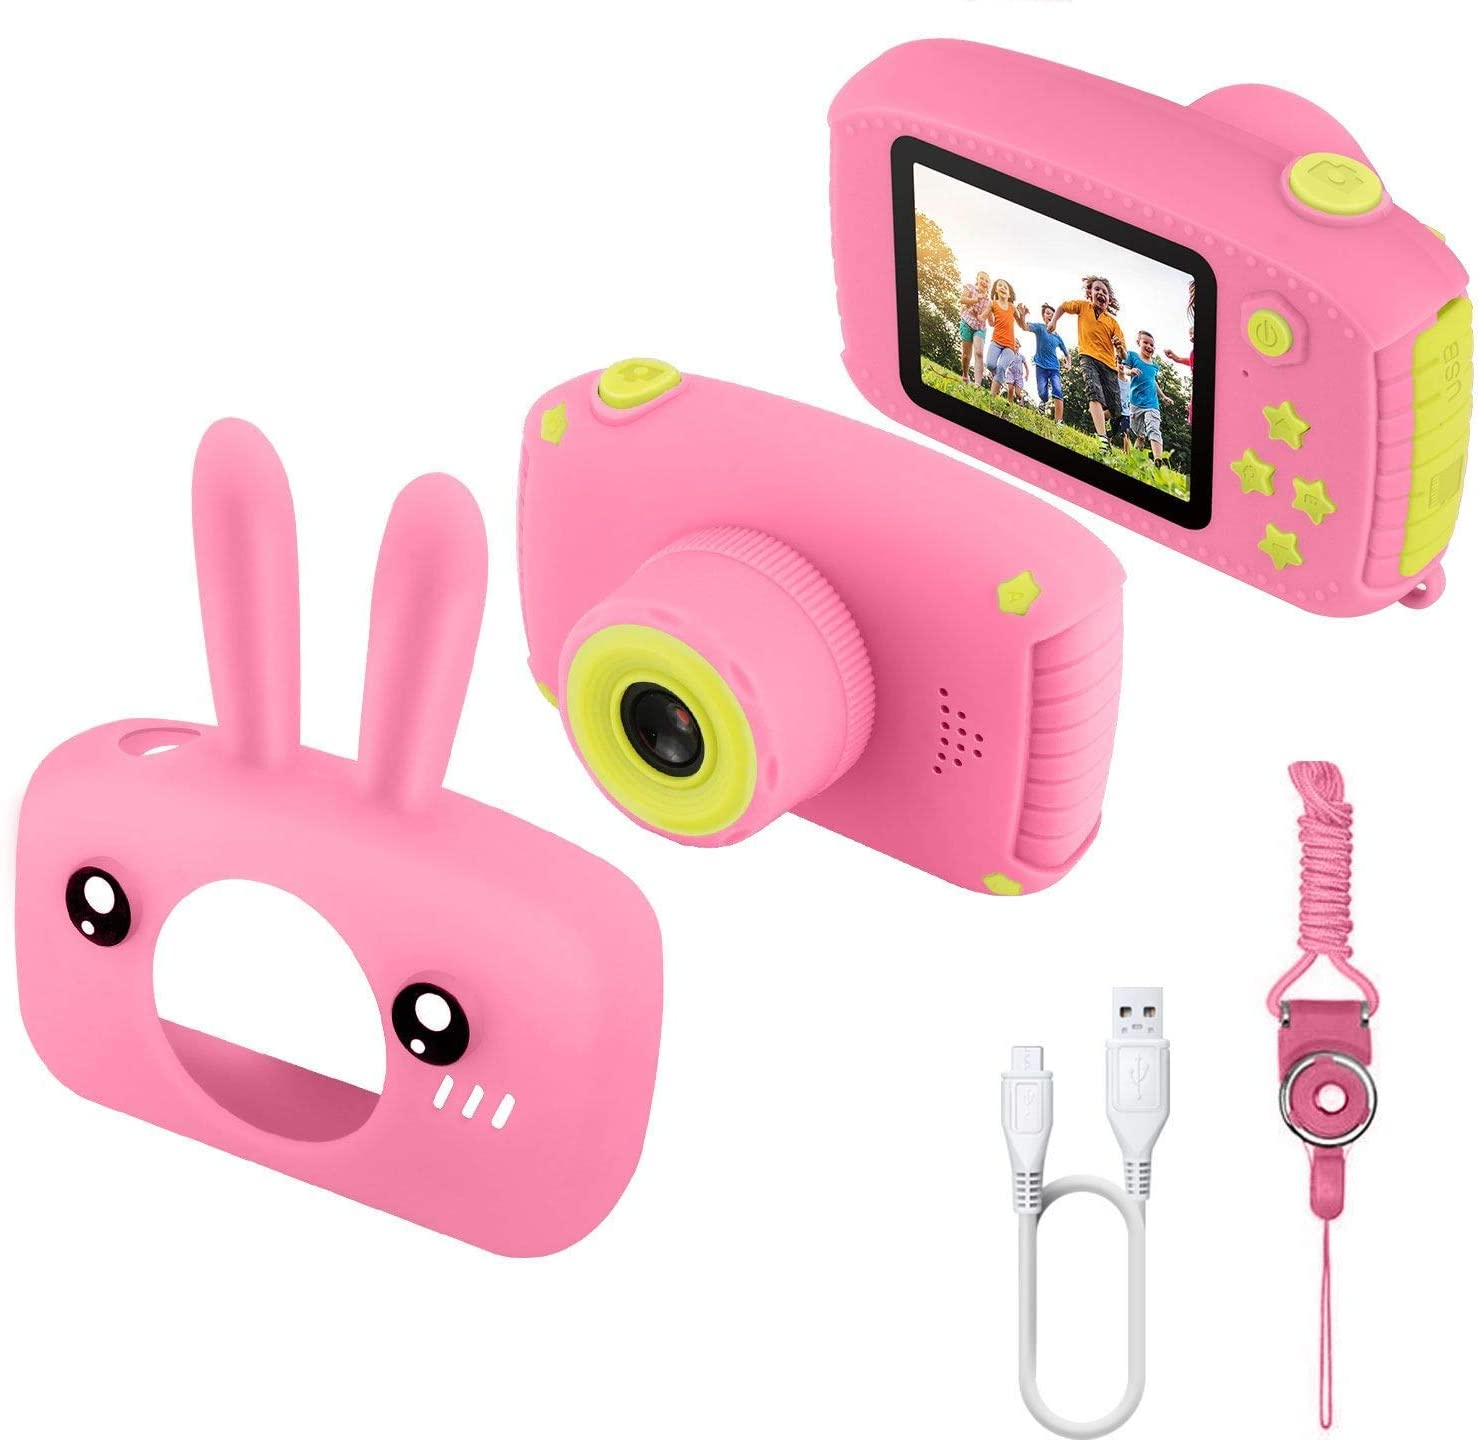 2020 Christmas 2 Inch Screen HD Digital Mini Camera Kids Cartoon Cute Camera for Kids Photo